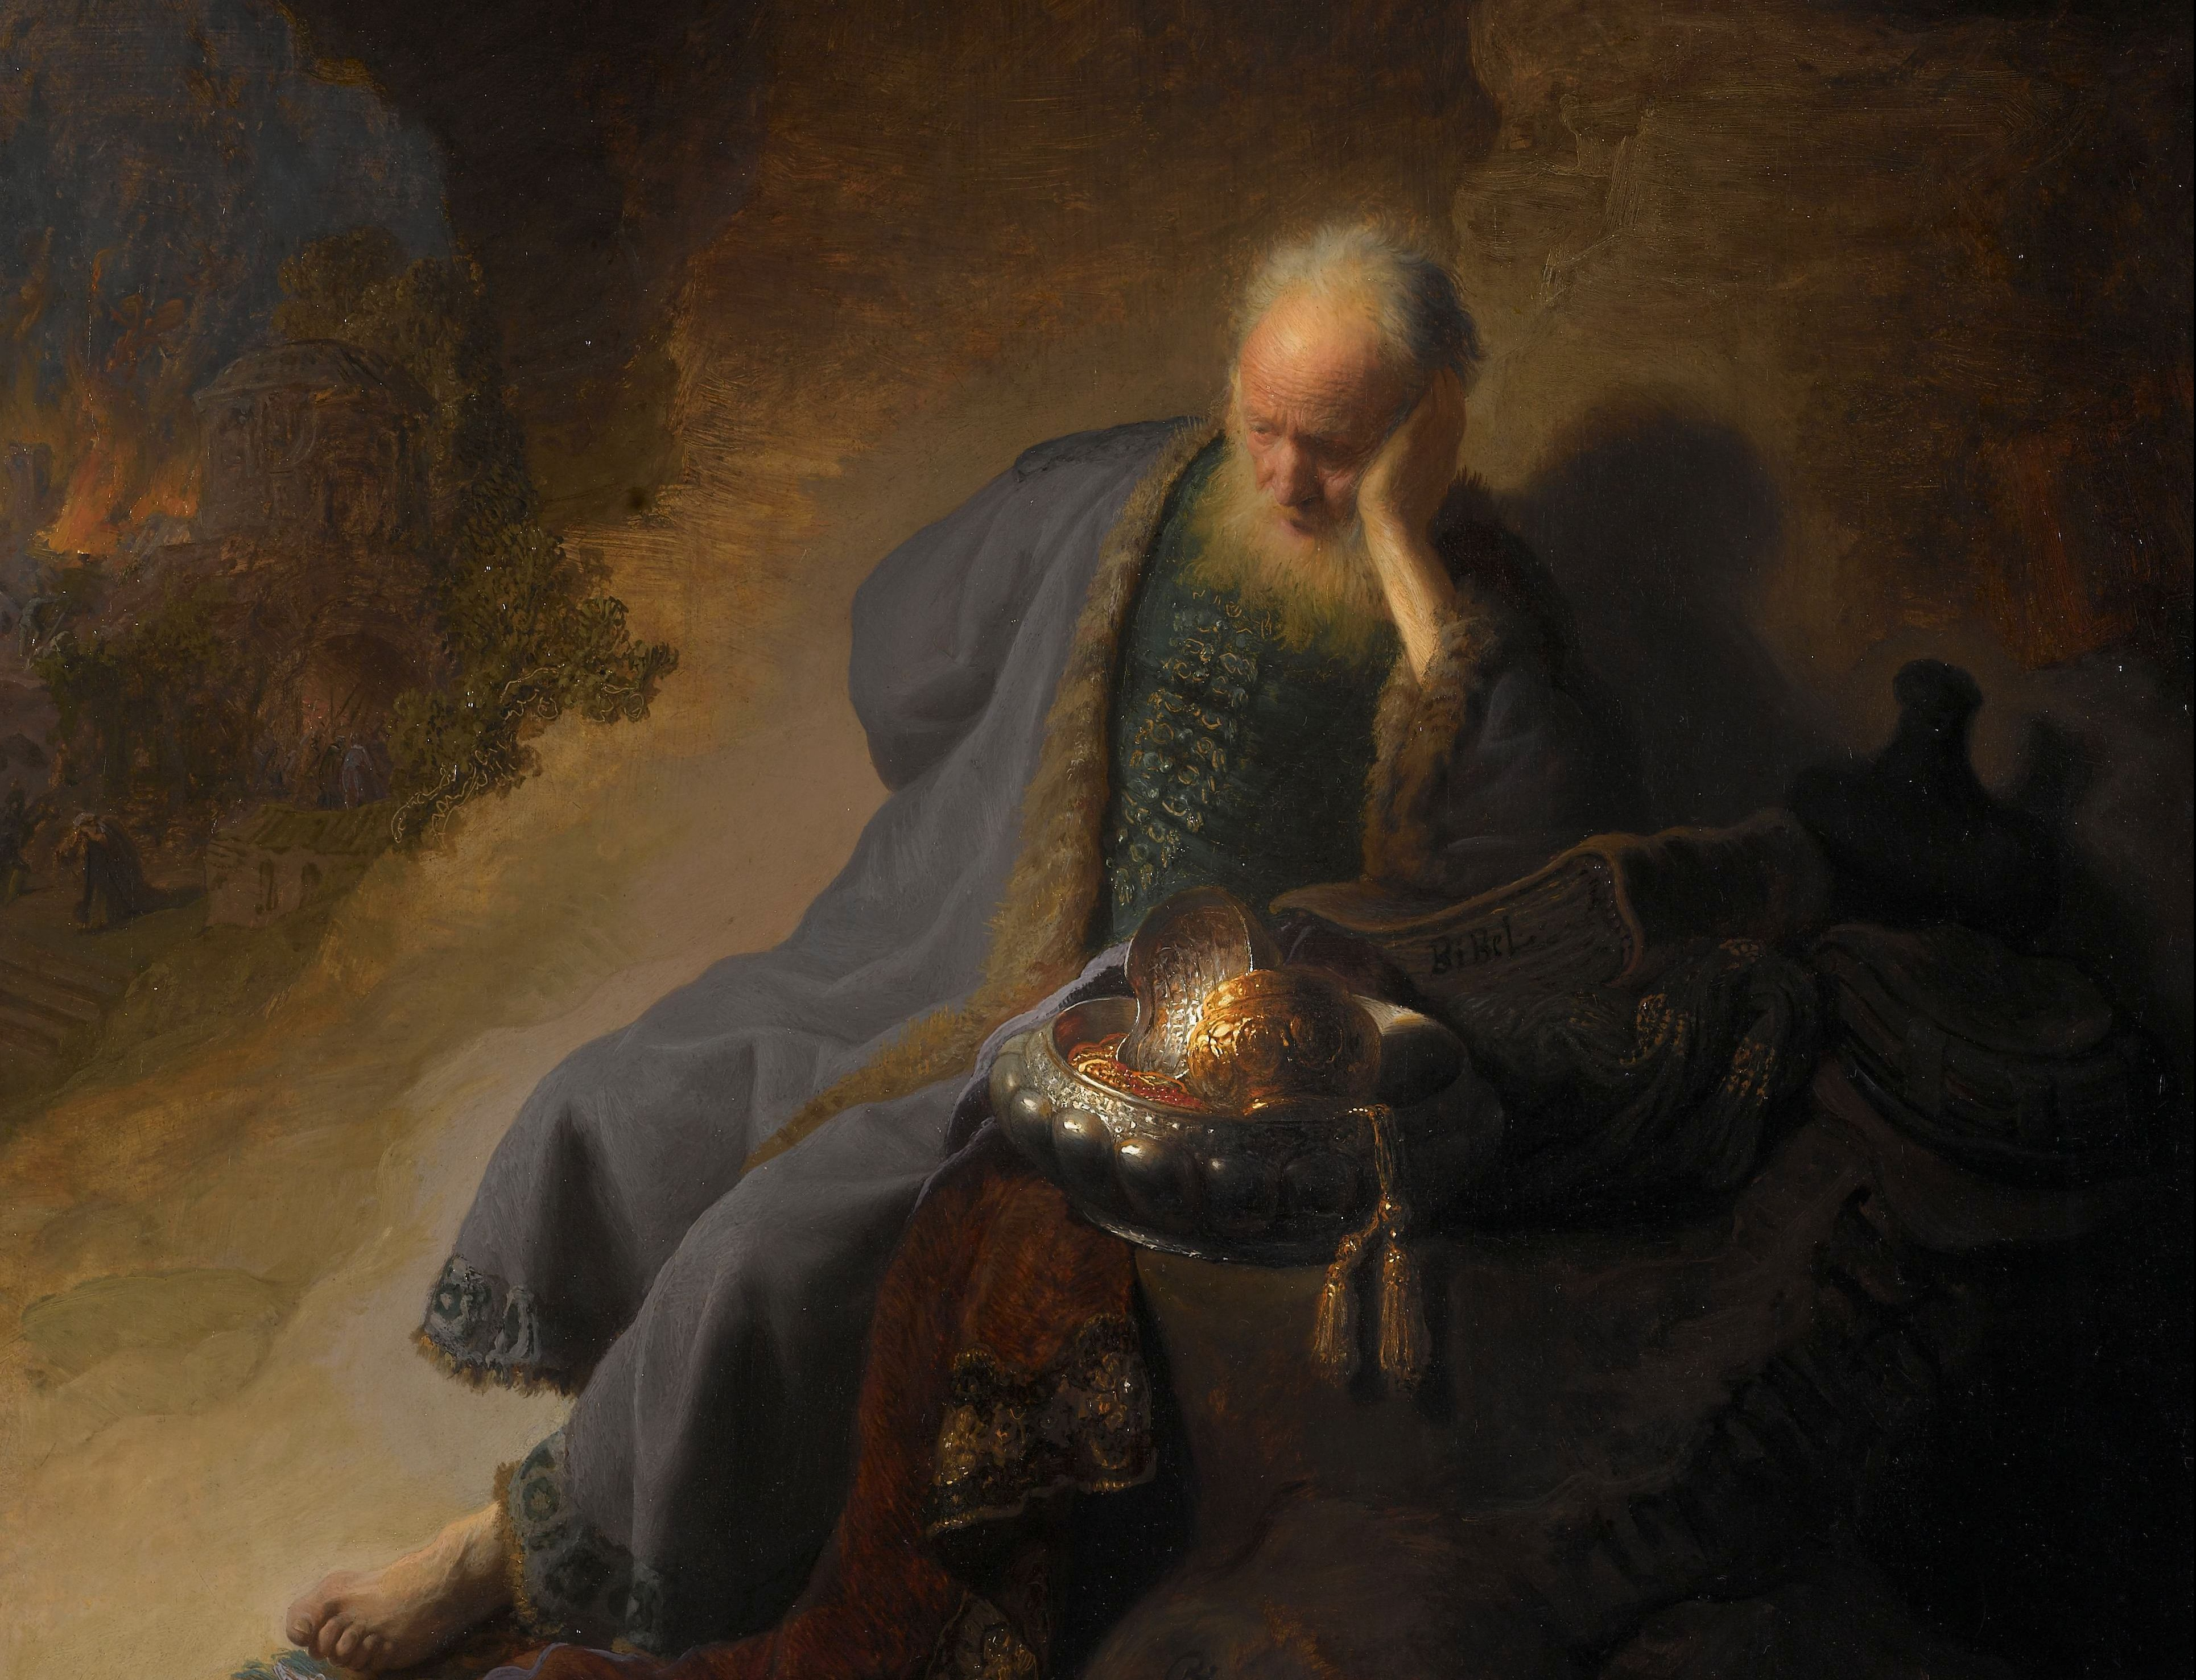 From Jeremiah Lamenting the Destruction of Jerusalem by Rembrandt. Wikimedia Commons.